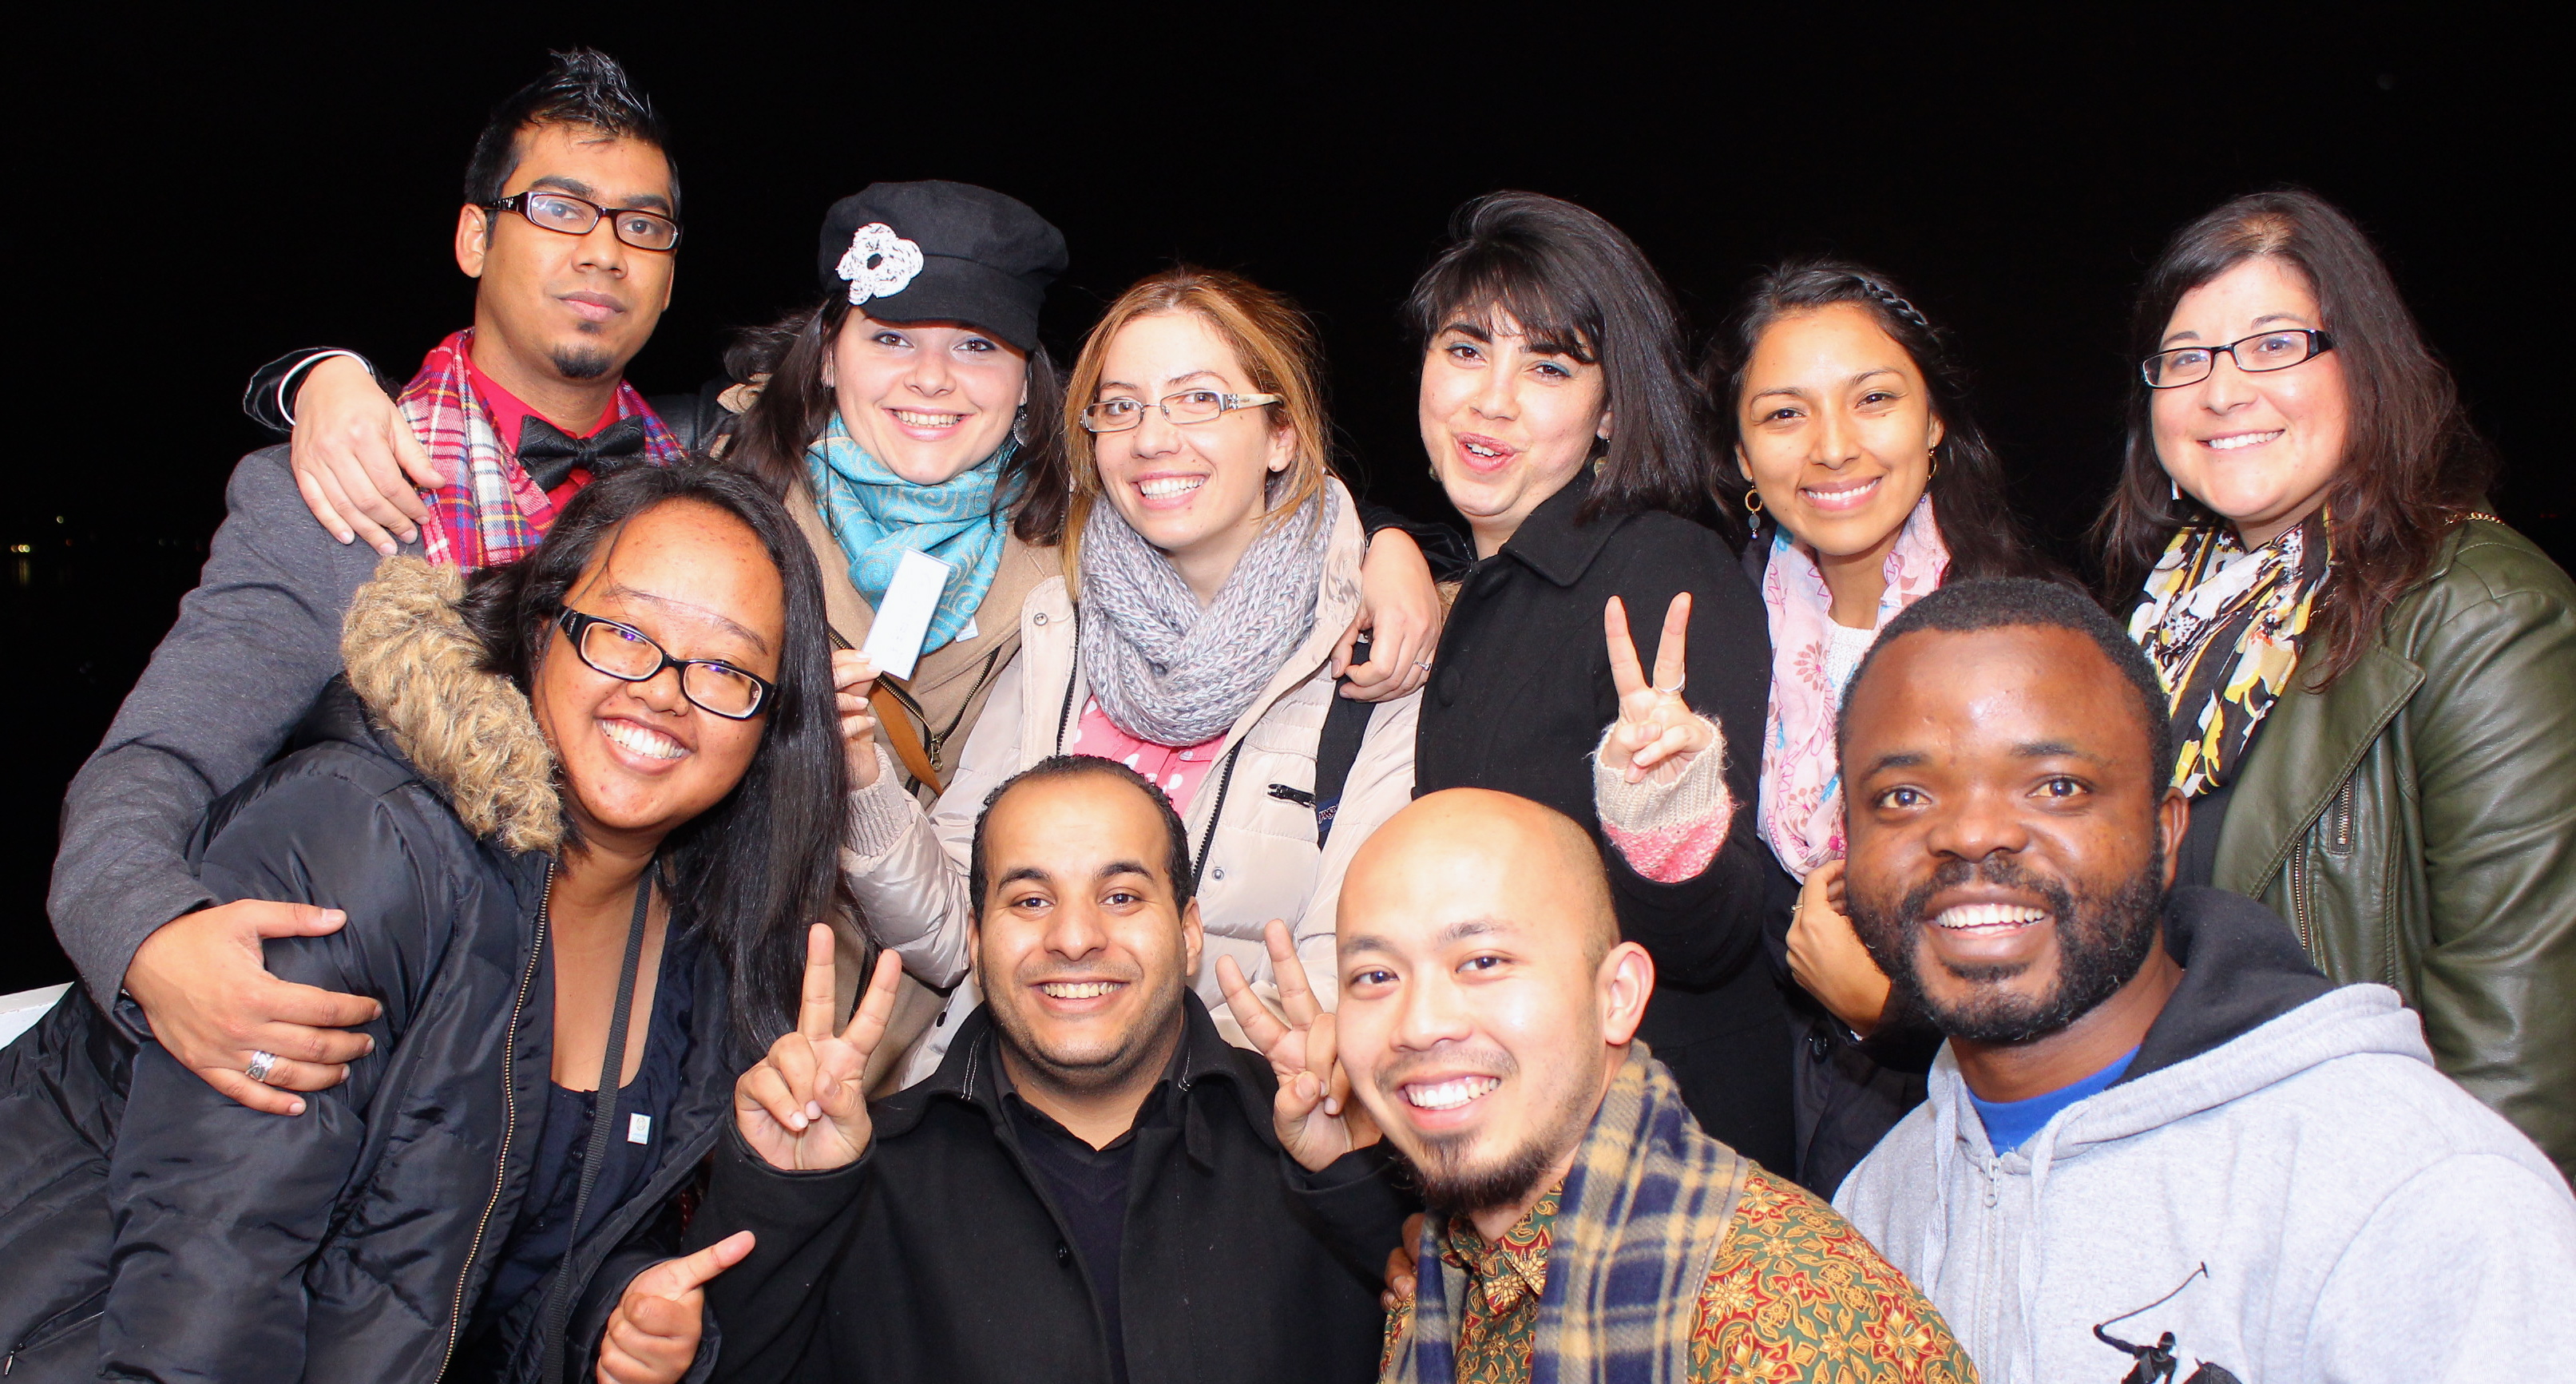 2013 Community Solutions Fellows (Abdillah Zamzuri, last row second from right)